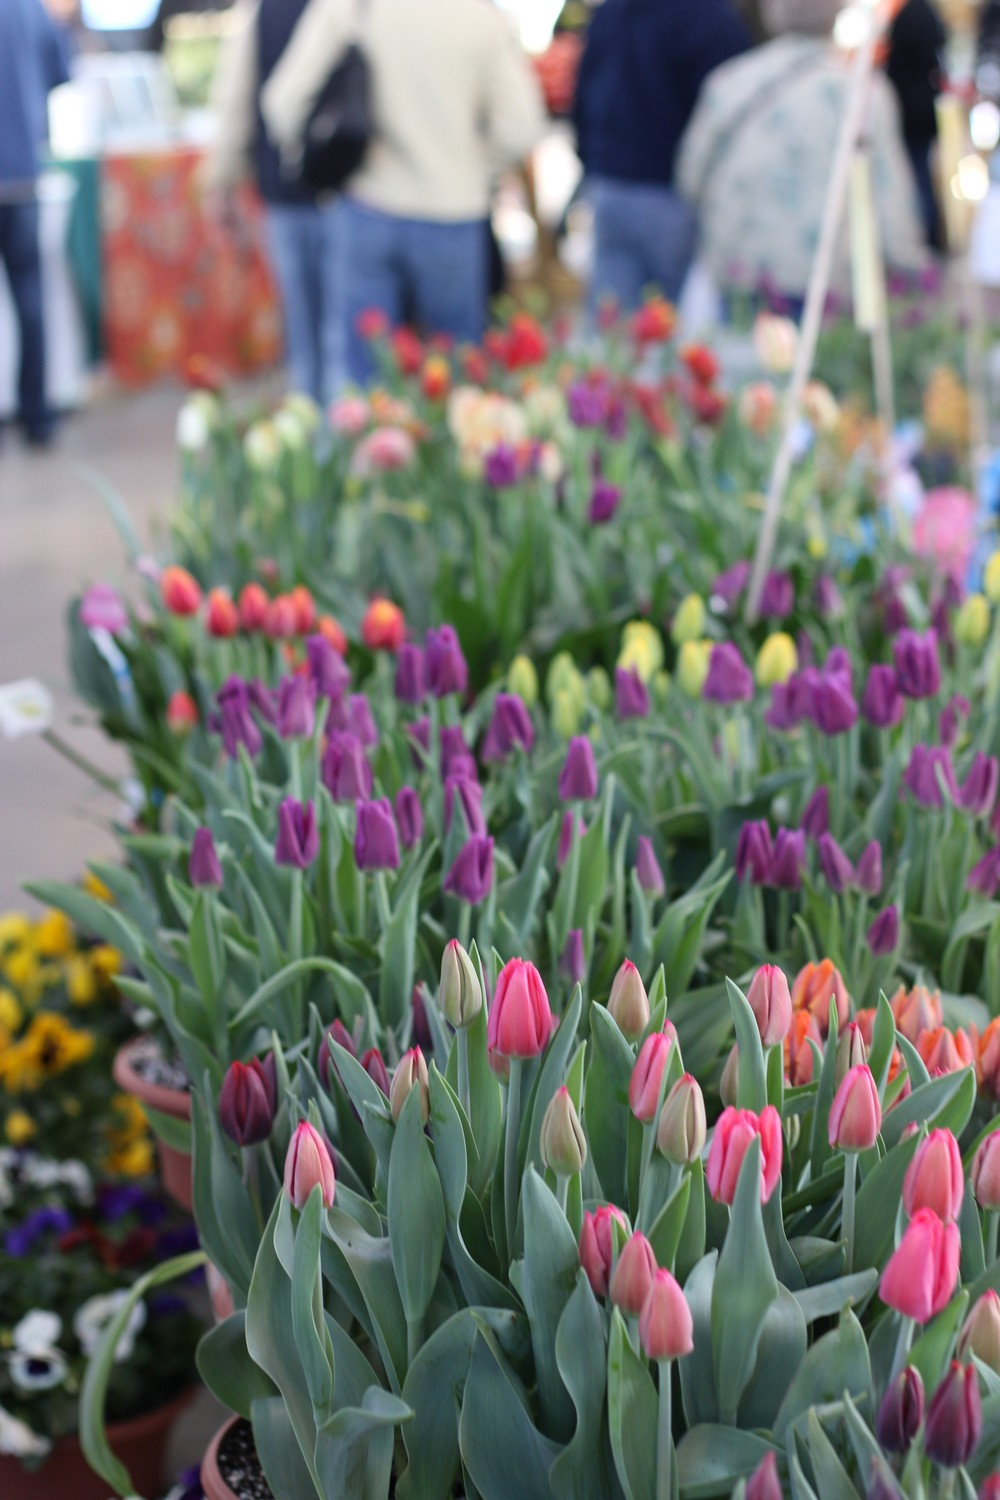 Tulips - Eastern Market, Detroit, MI - April 2014